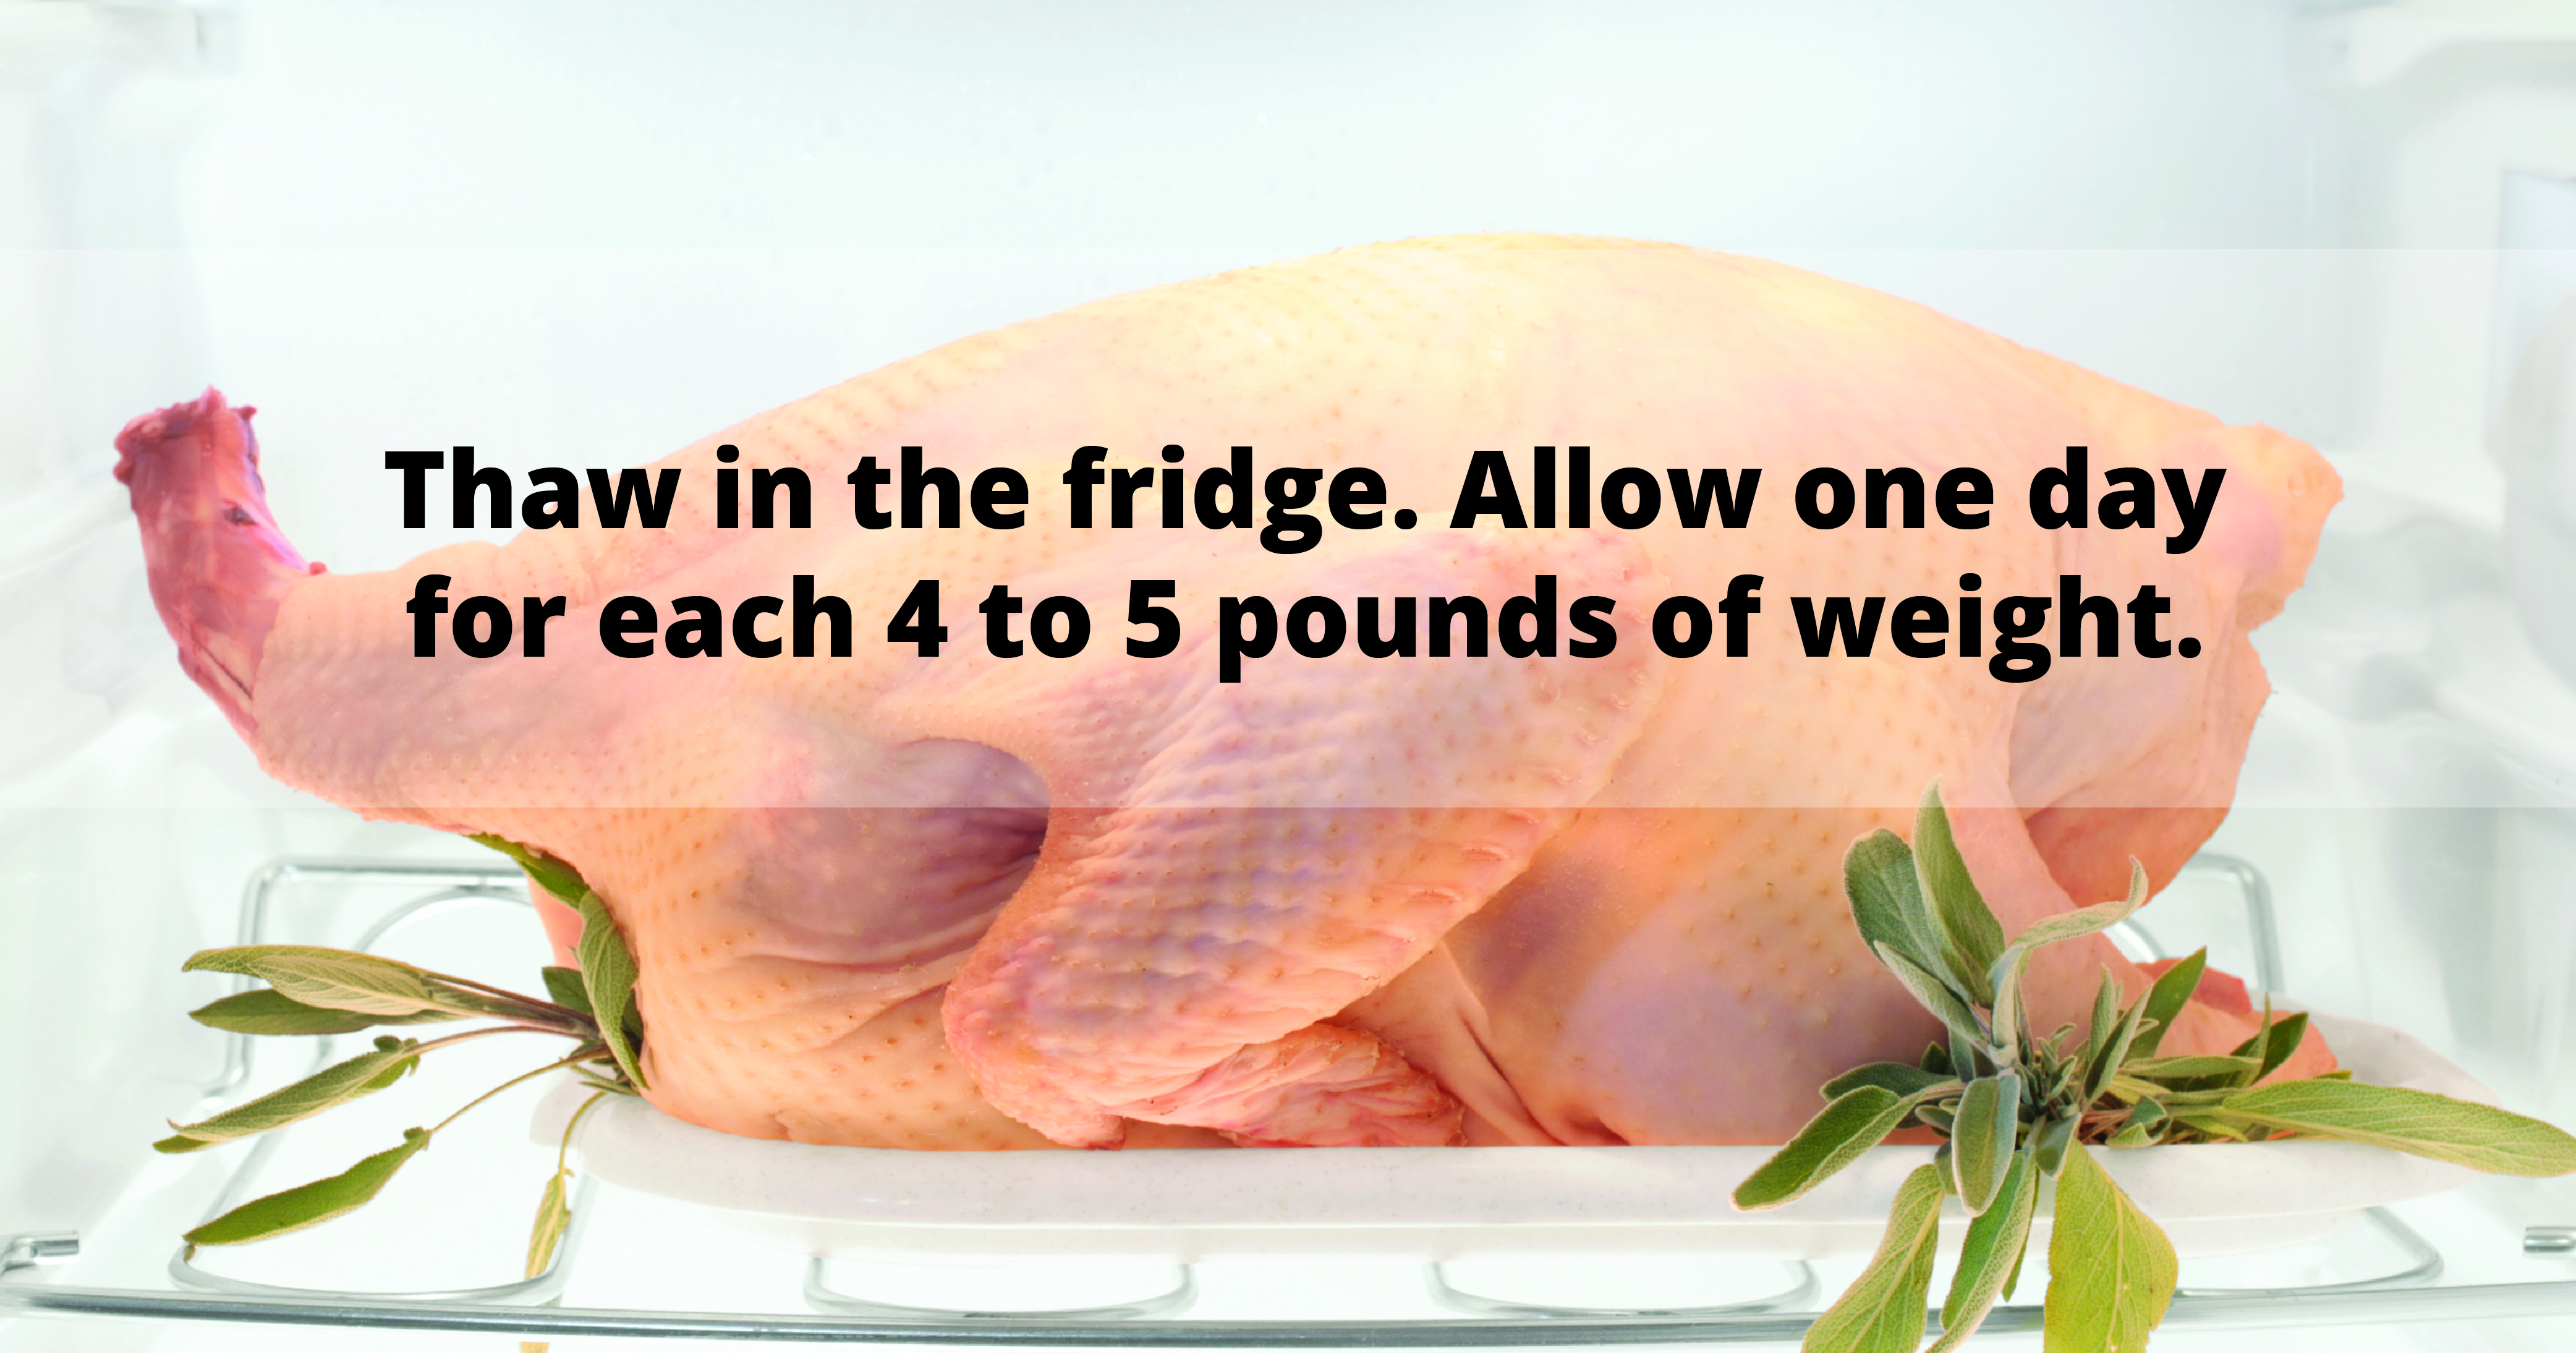 A raw turkey garnished with sage sits on a white tray in a white refrigerator. Text reads: Thaw in the fridge. Allow one day for each 4 to 5 pounds of weight.